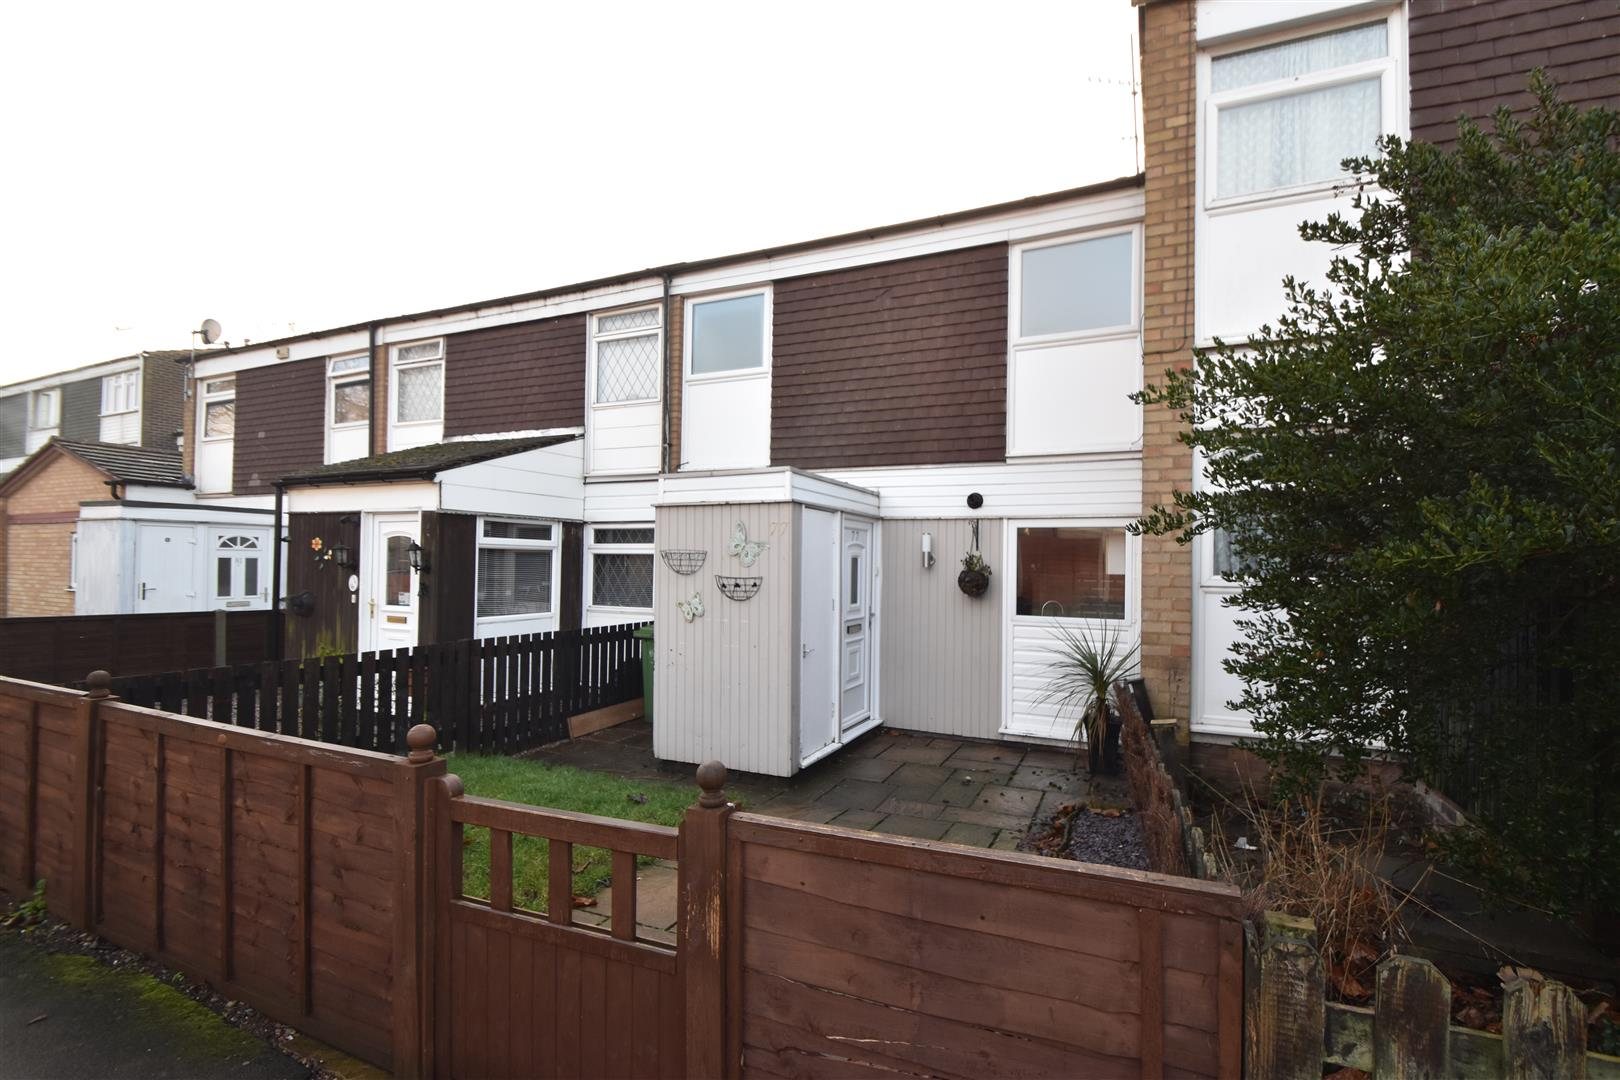 3 Bedrooms Terraced House for sale in Thatchers Court, Droitwich Spa